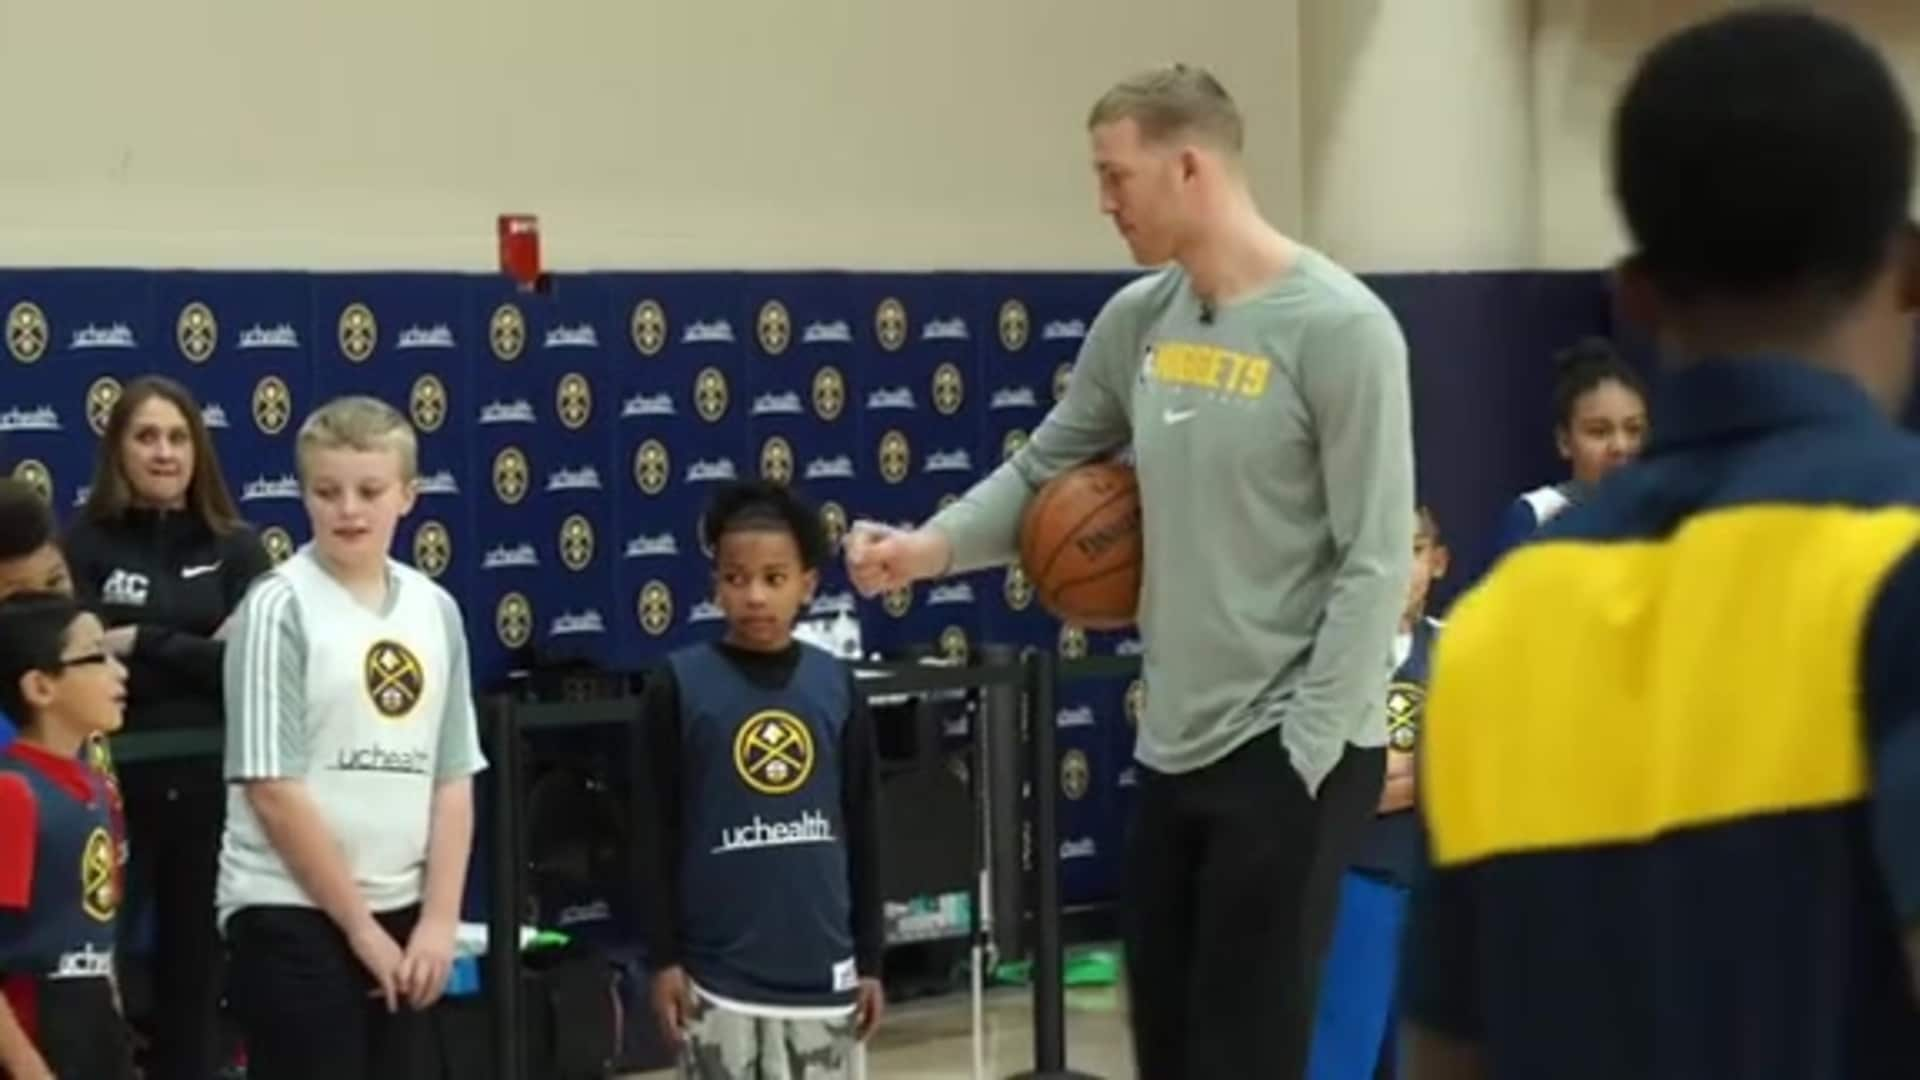 Nuggets host UCHealth Basketball 101 Clinic